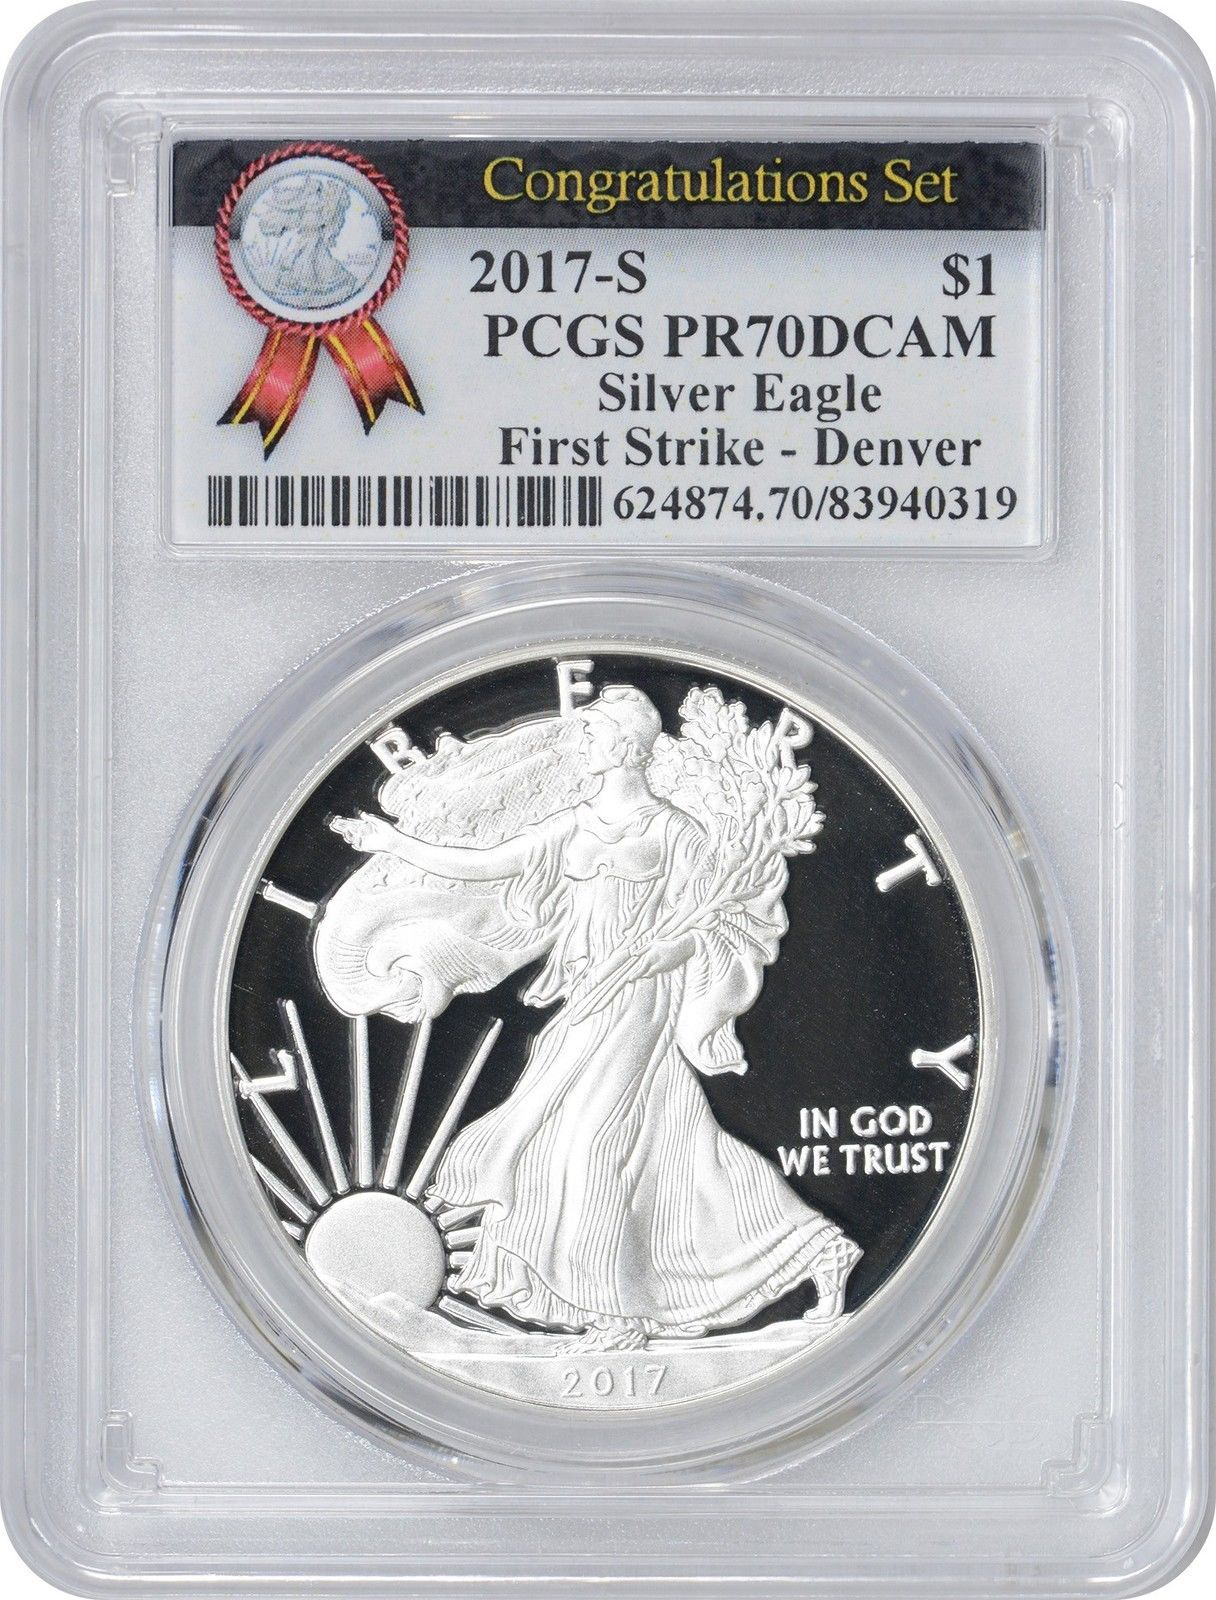 2017 s silver eagle congratulations set pr70dcam pcgs first strike denver mint